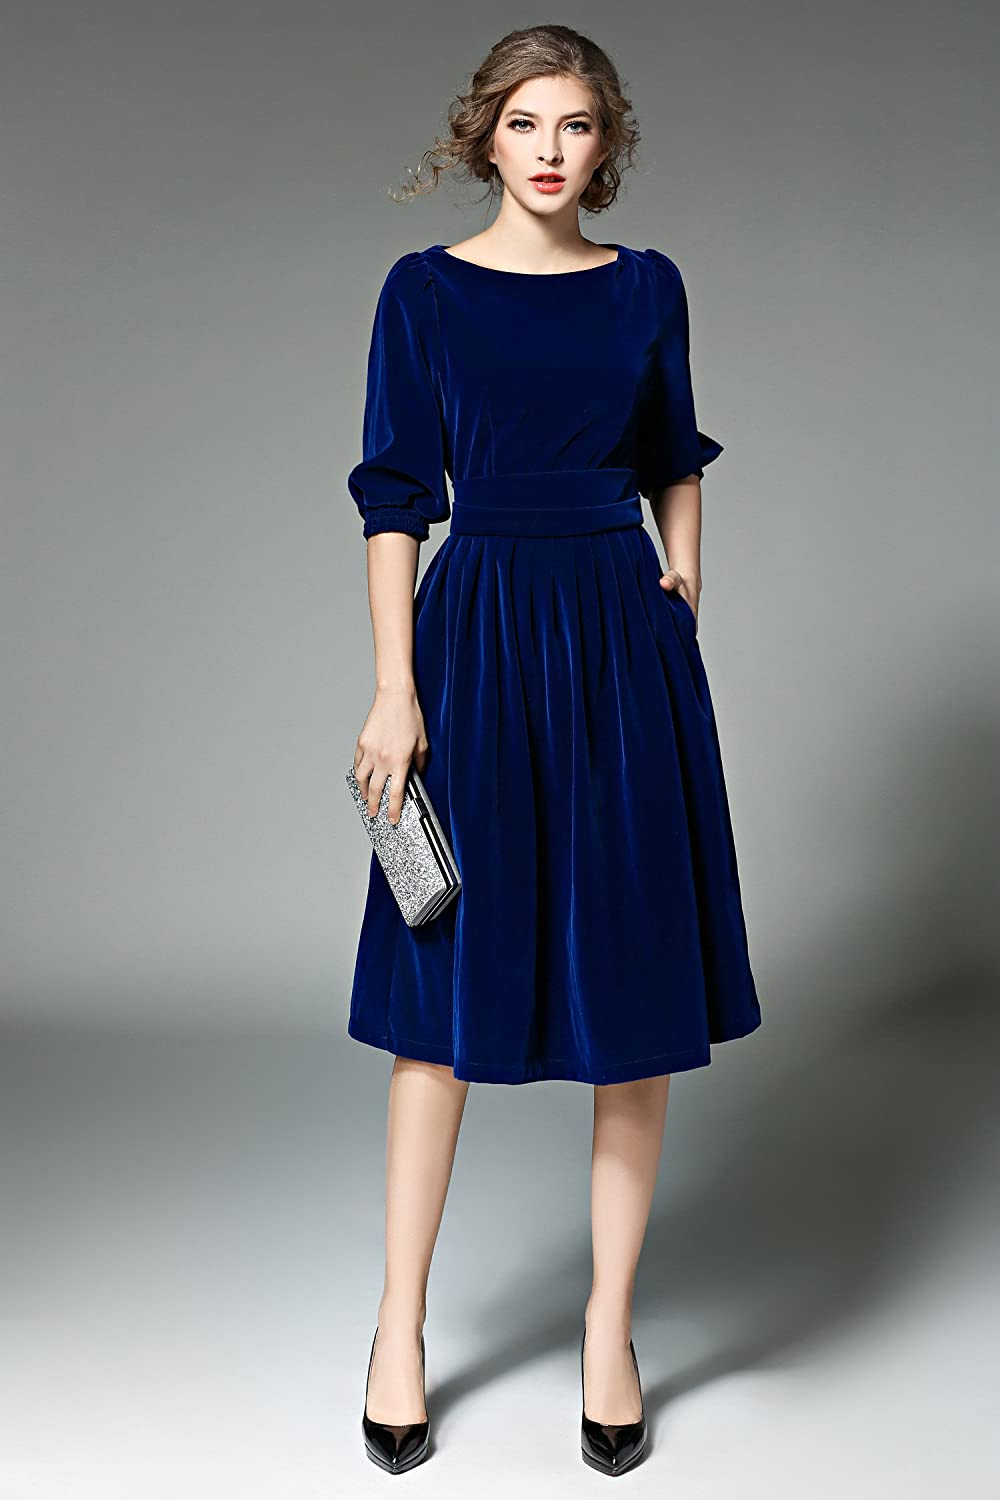 1940s Dress Styles Womens Vintage Round Neck Velvet Tunic Swing A-Line Dress $48.98 AT vintagedancer.com